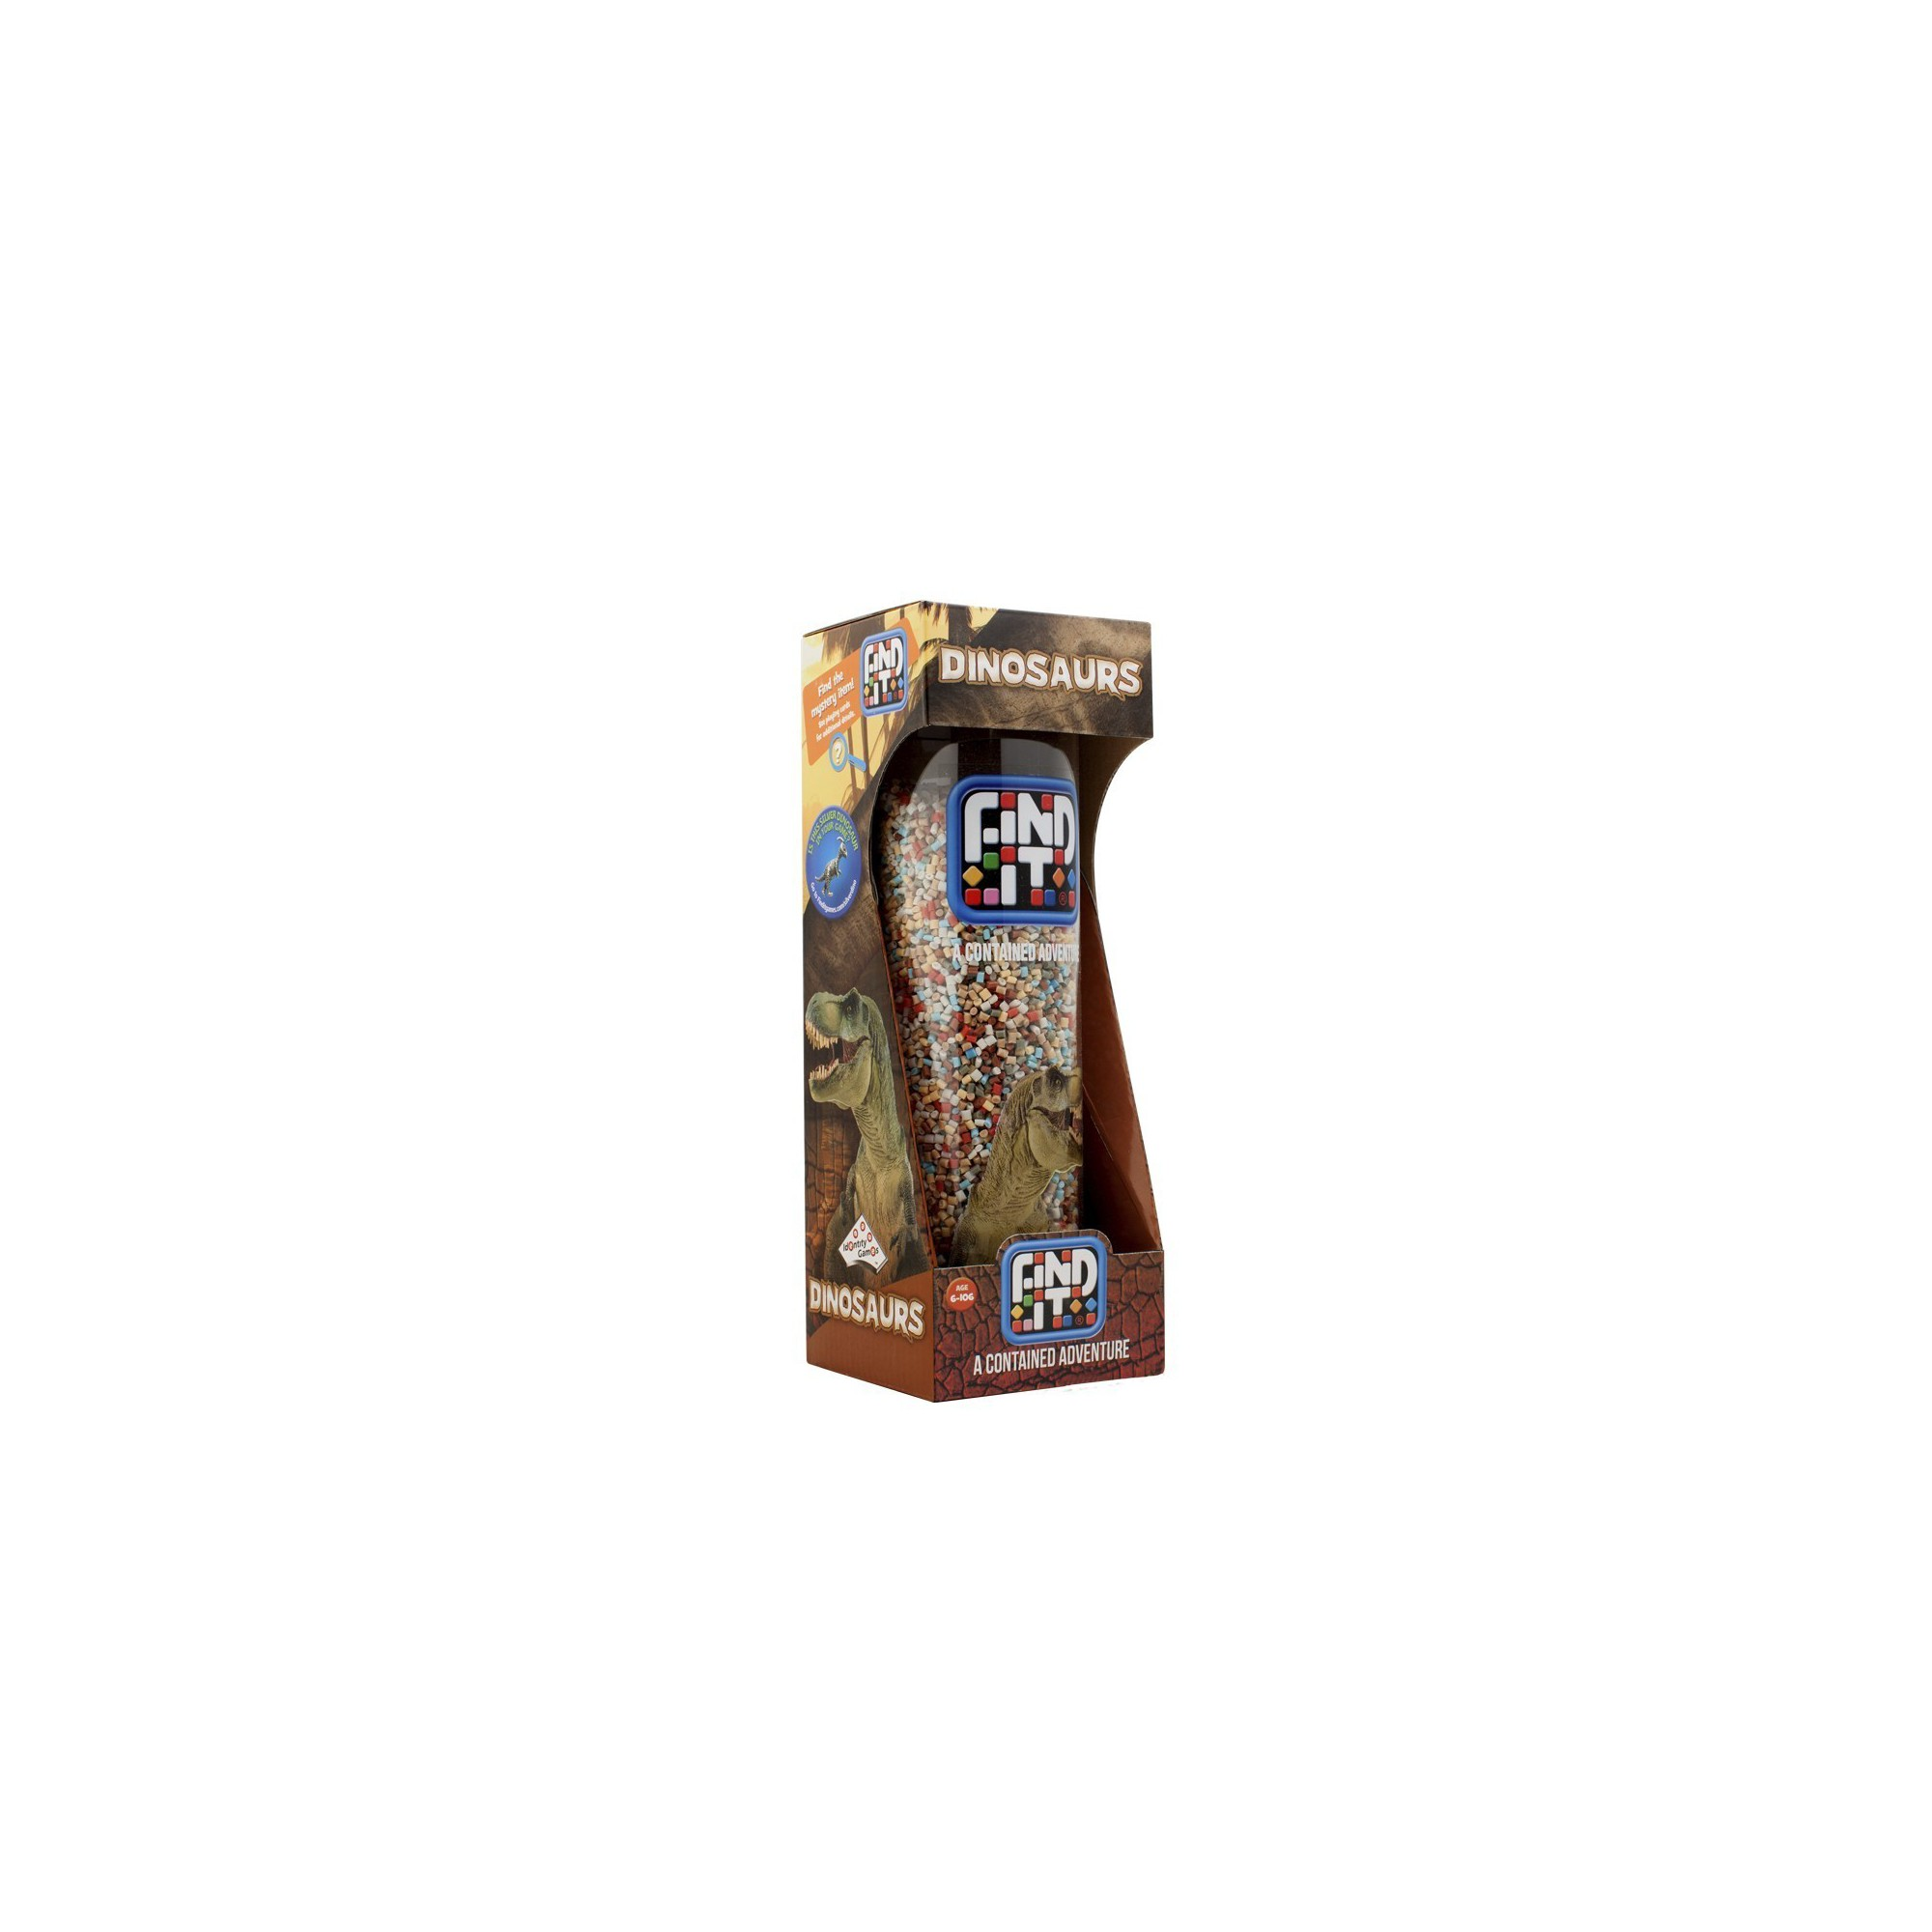 Find It Dinosaurs Hidden Object Game